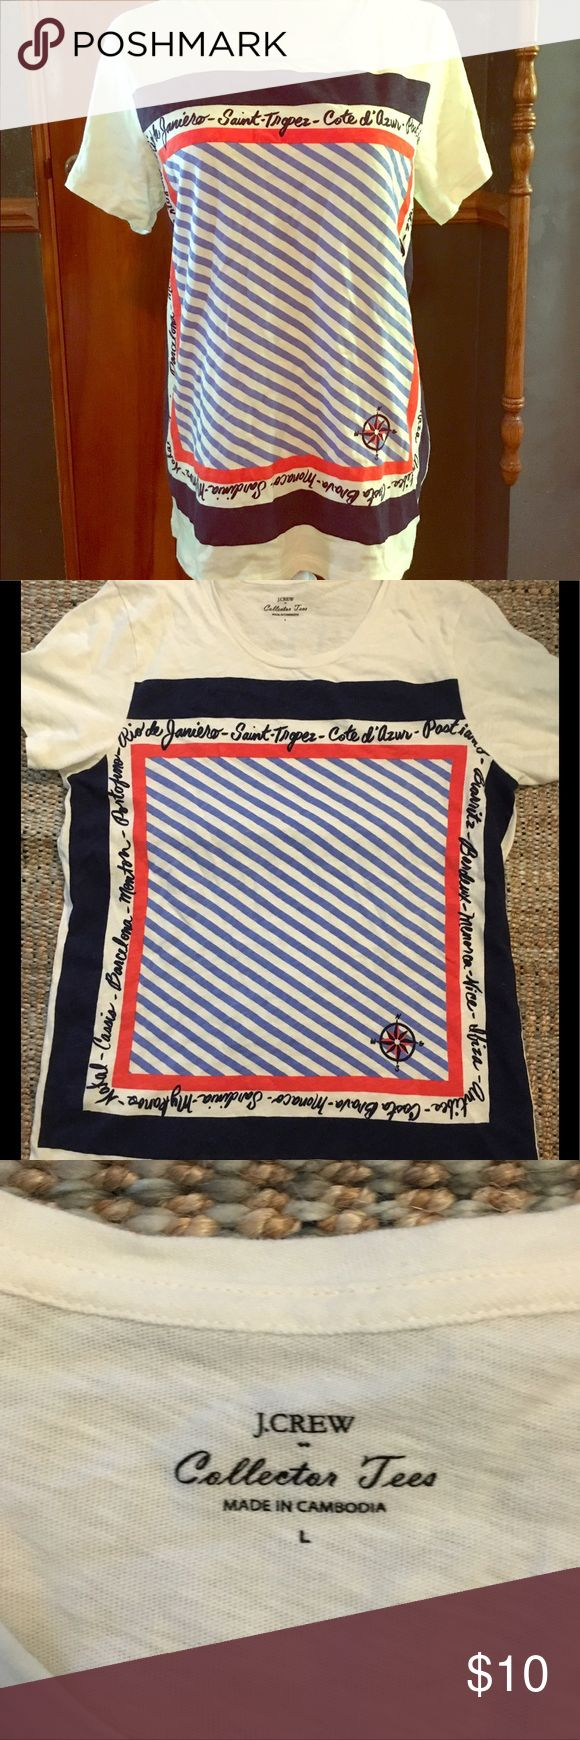 J Crew Factory Collector Tee Cream tee with blue and orange graphic on the front side. Back side is plain cream tee J. Crew Factory Tops Tees - Short Sleeve